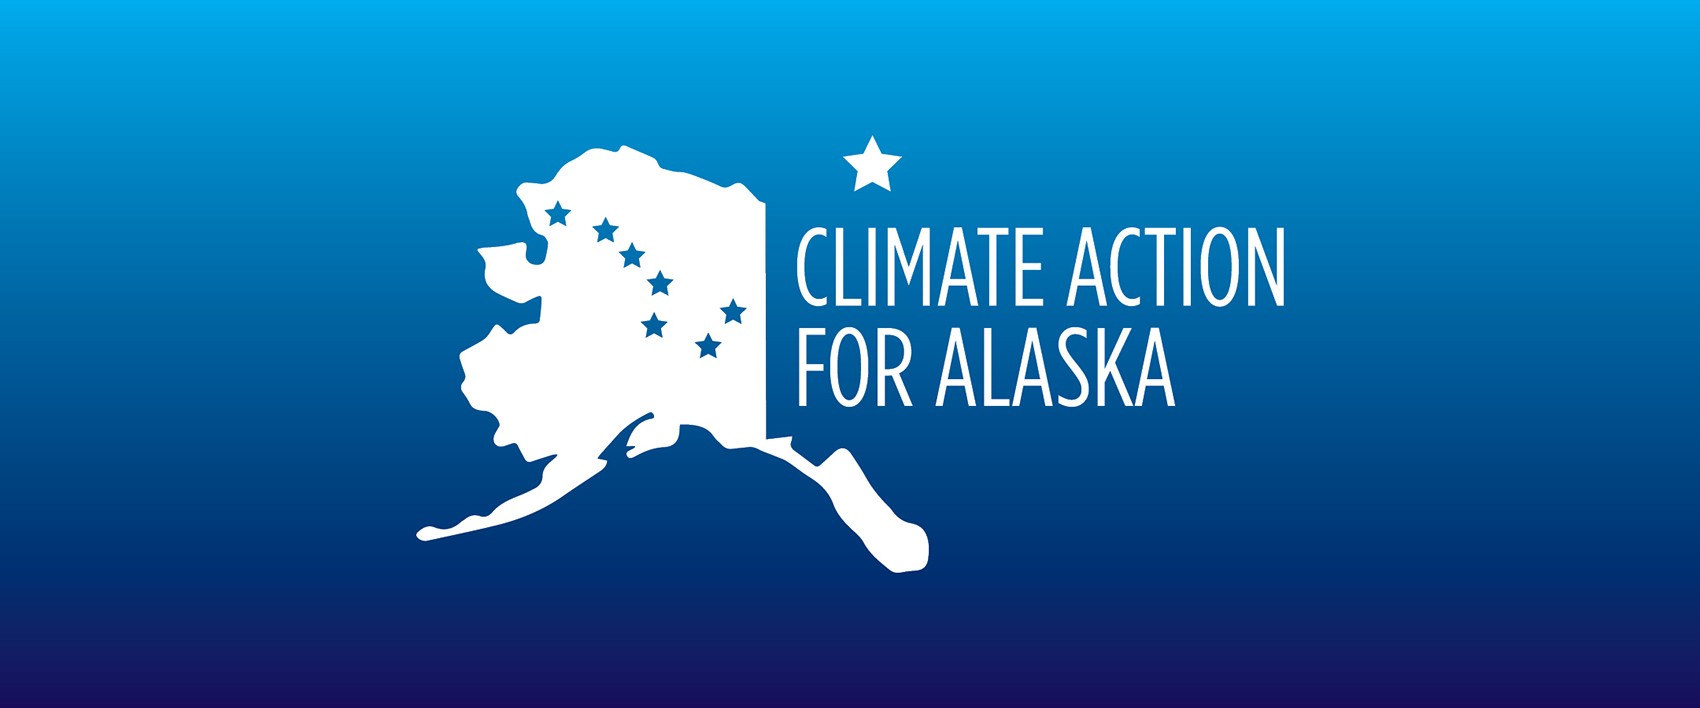 Climate Action for Alaska logo on blue field to introduce action areas slide show